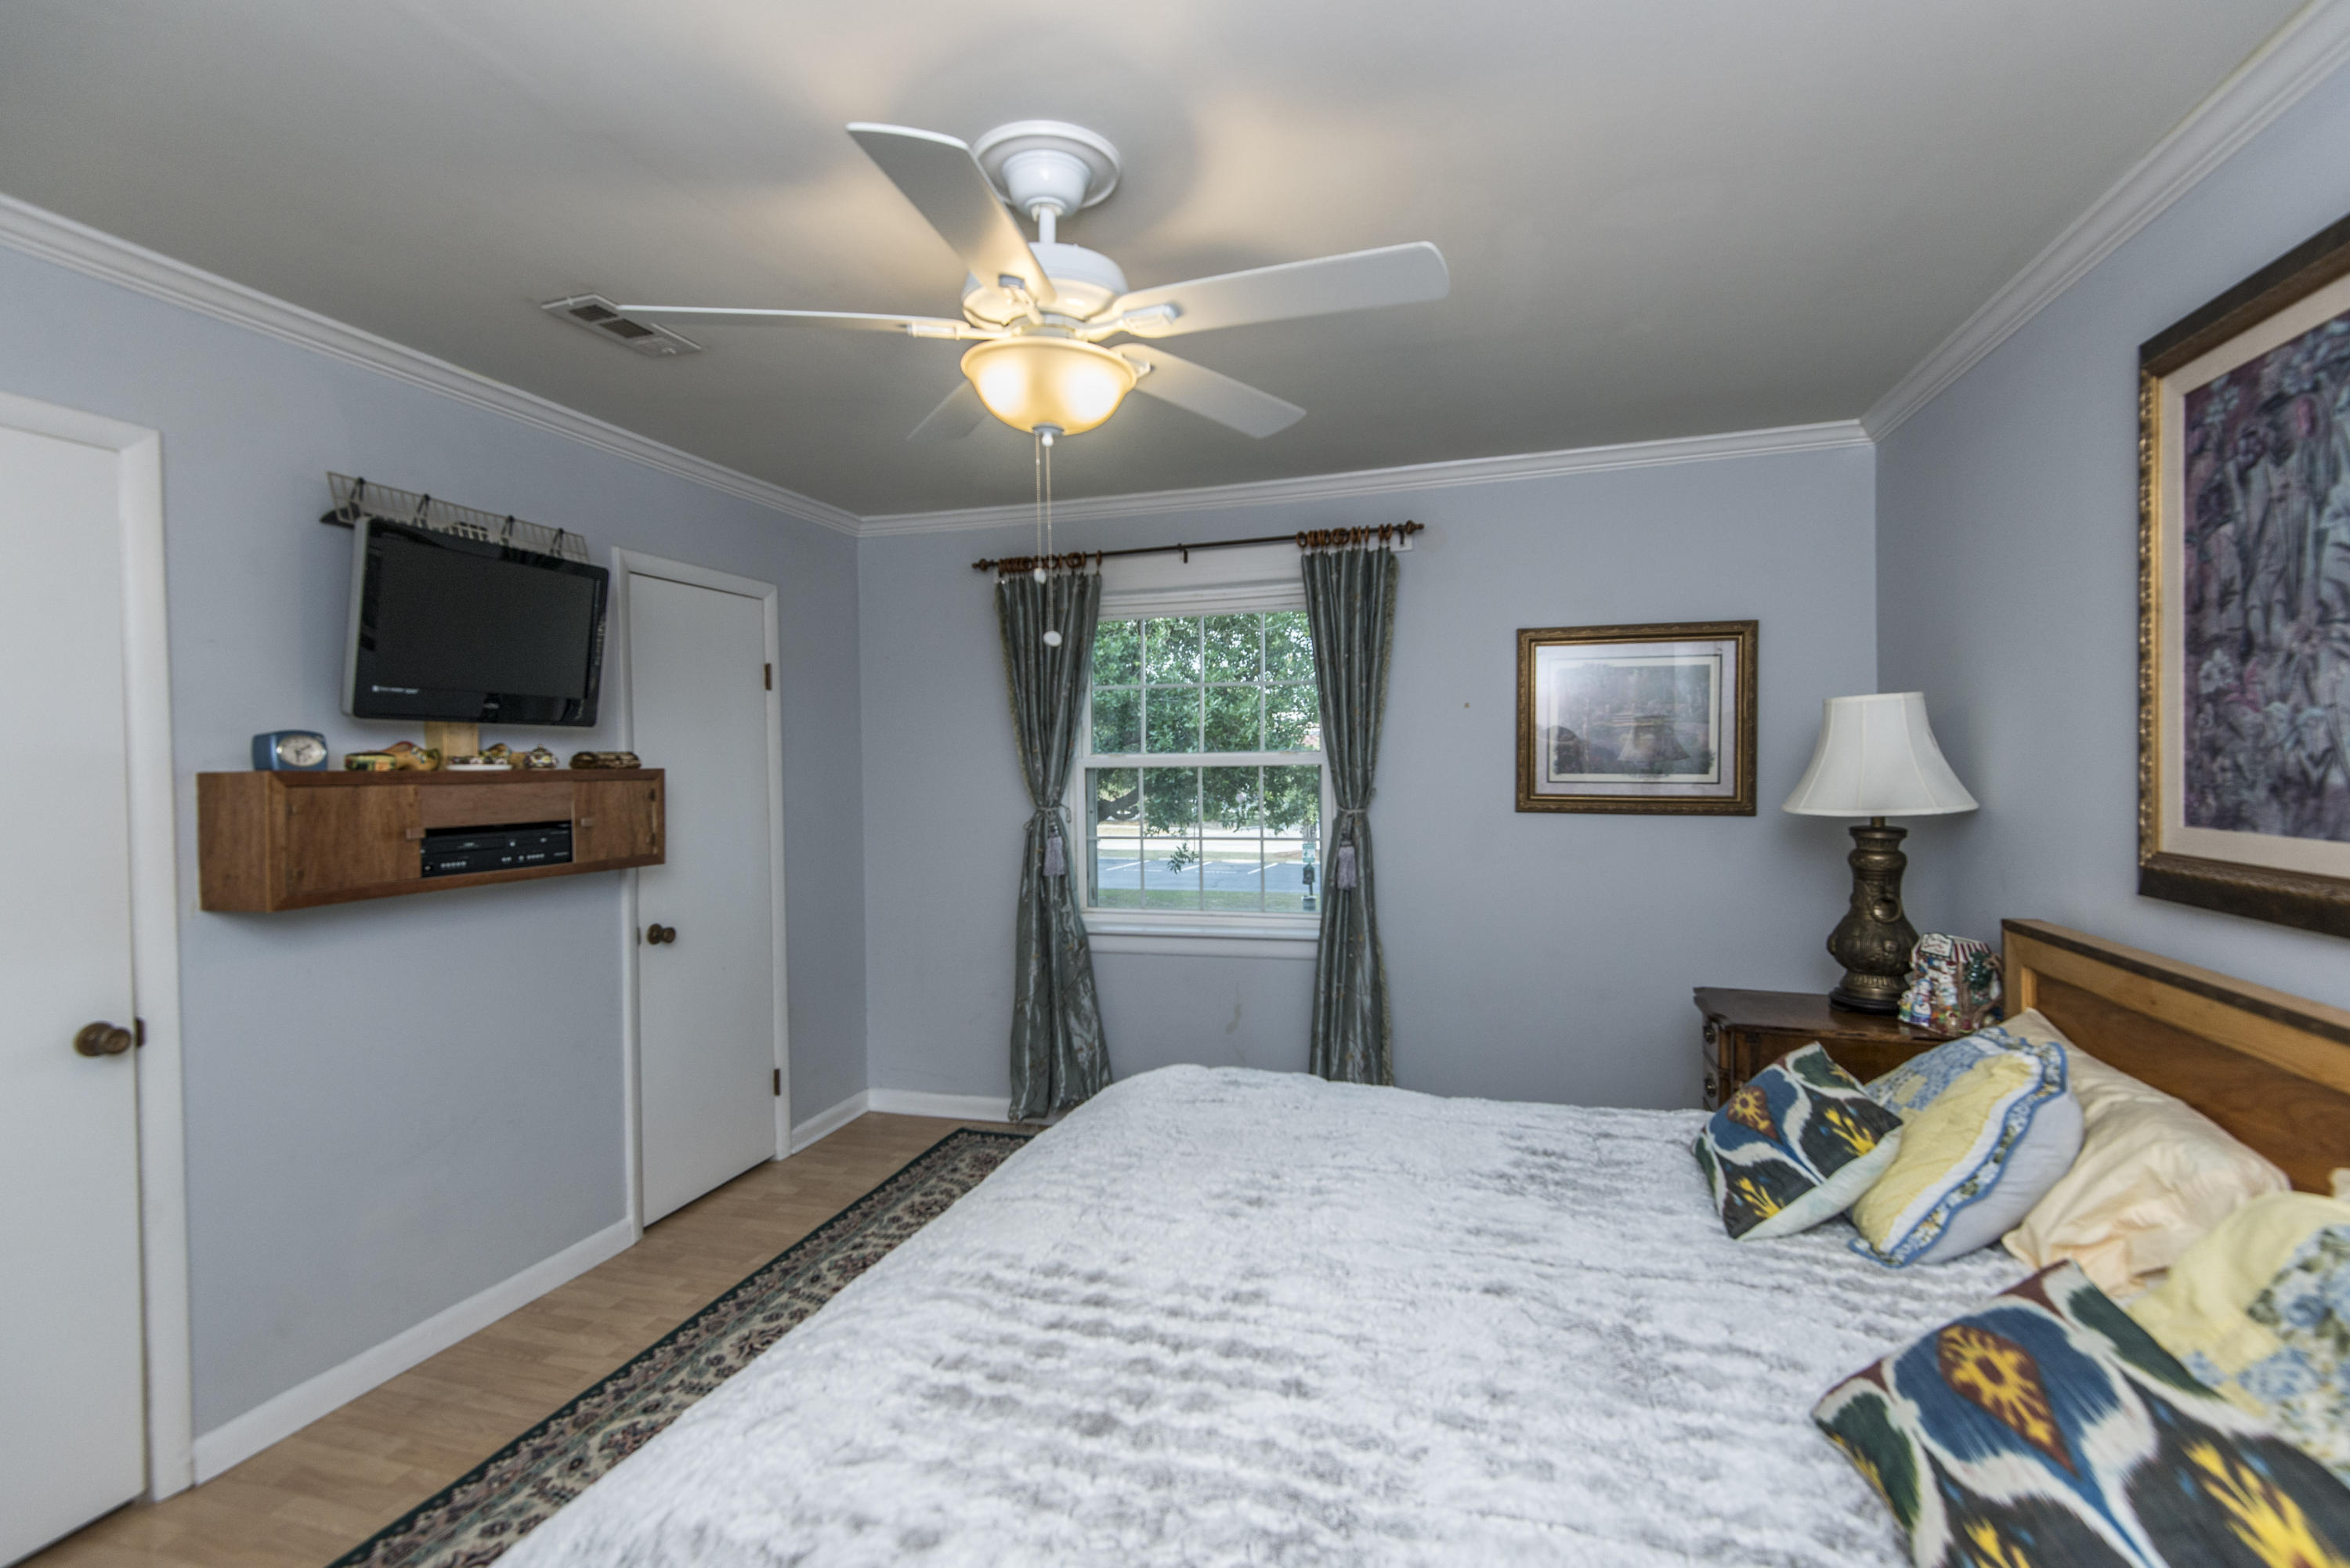 Rivers Point Row Homes For Sale - 21 Rivers Point Row, Charleston, SC - 13